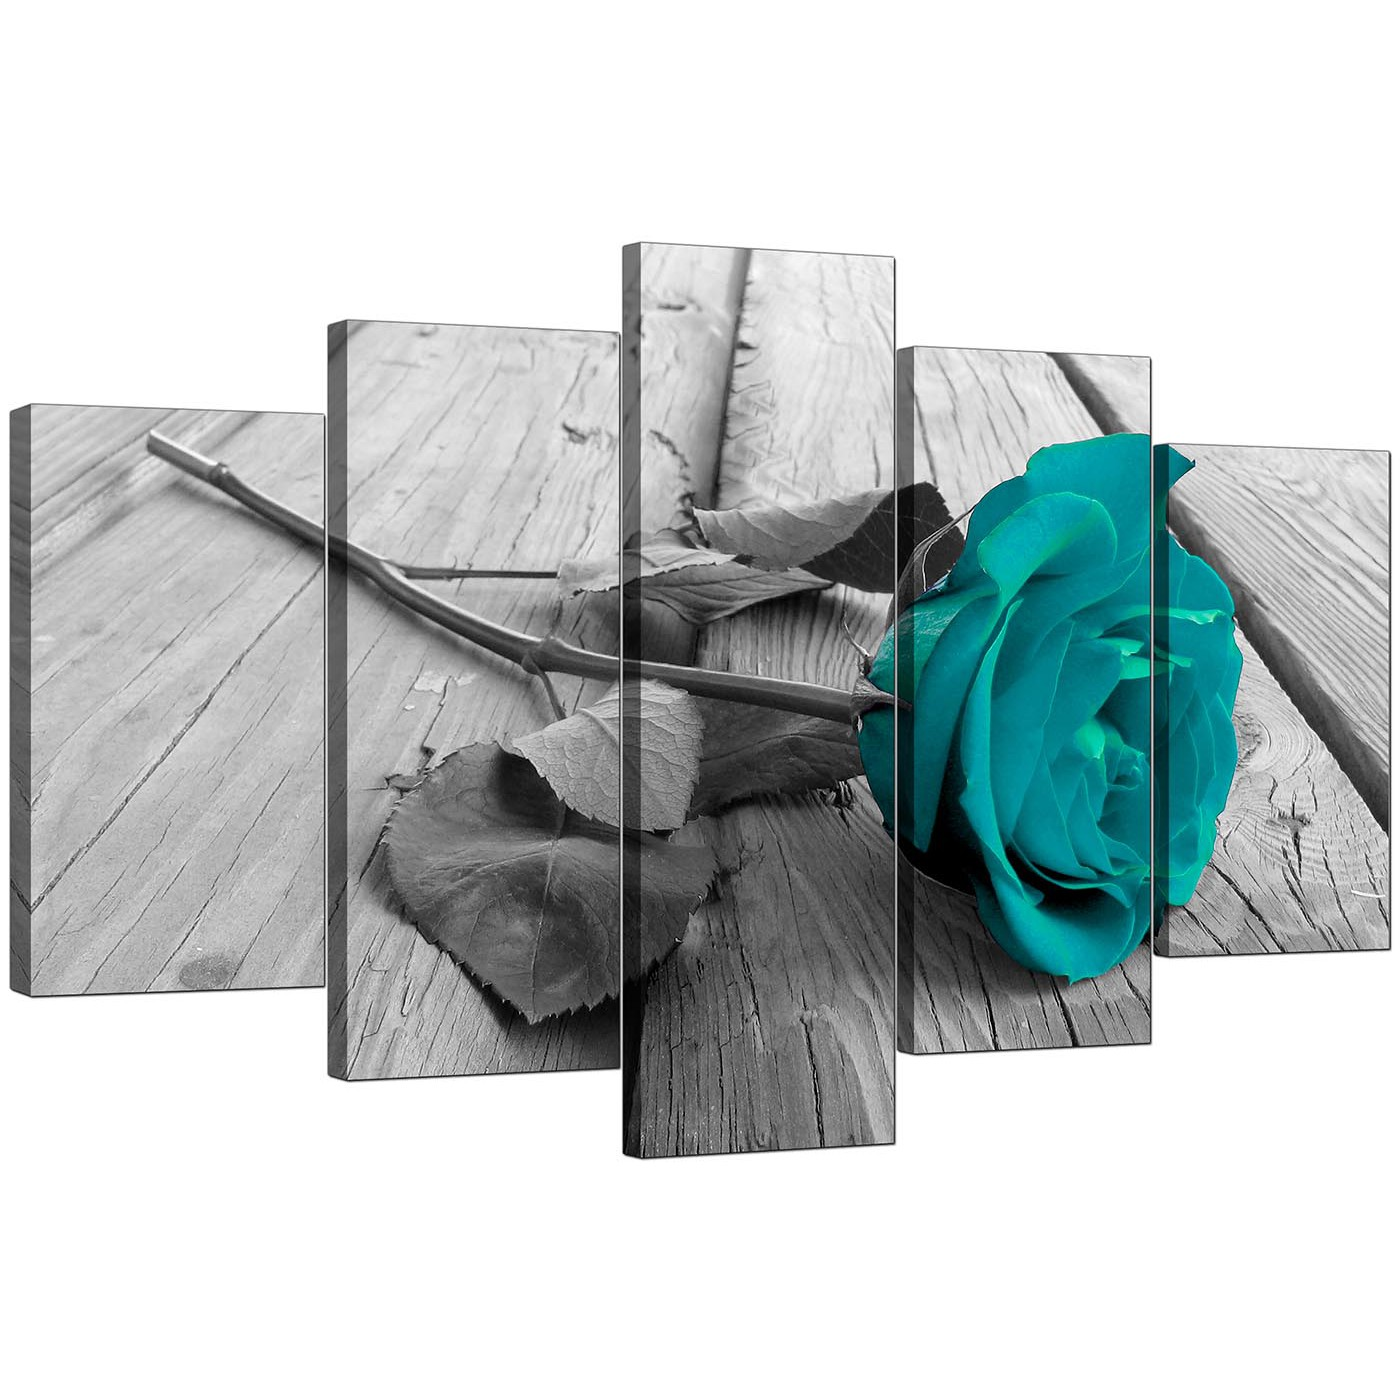 Black And White Canvas Wall Art extra large teal rose canvas prints set of 5 in black & white